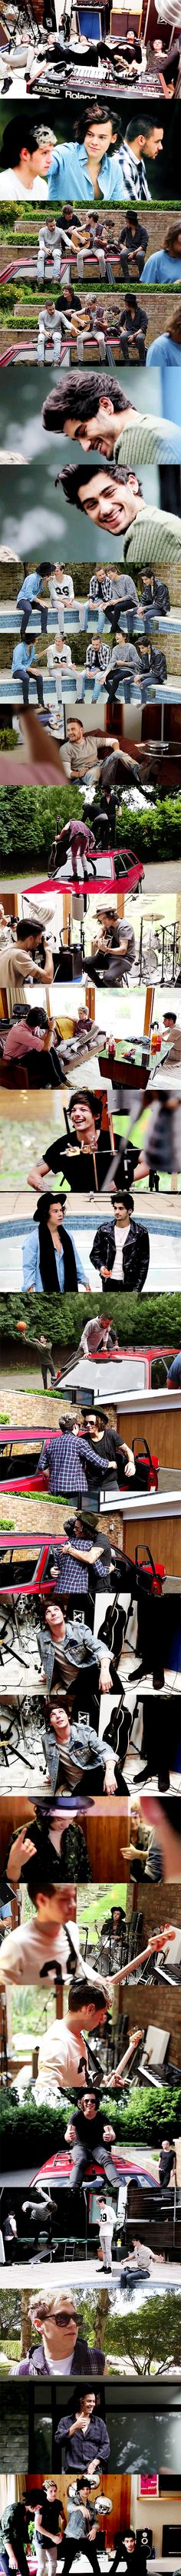 They are so amazing together. Zayn you will always be a part of 1D. I'm gladd that I got the chance to see you on stage last year <3